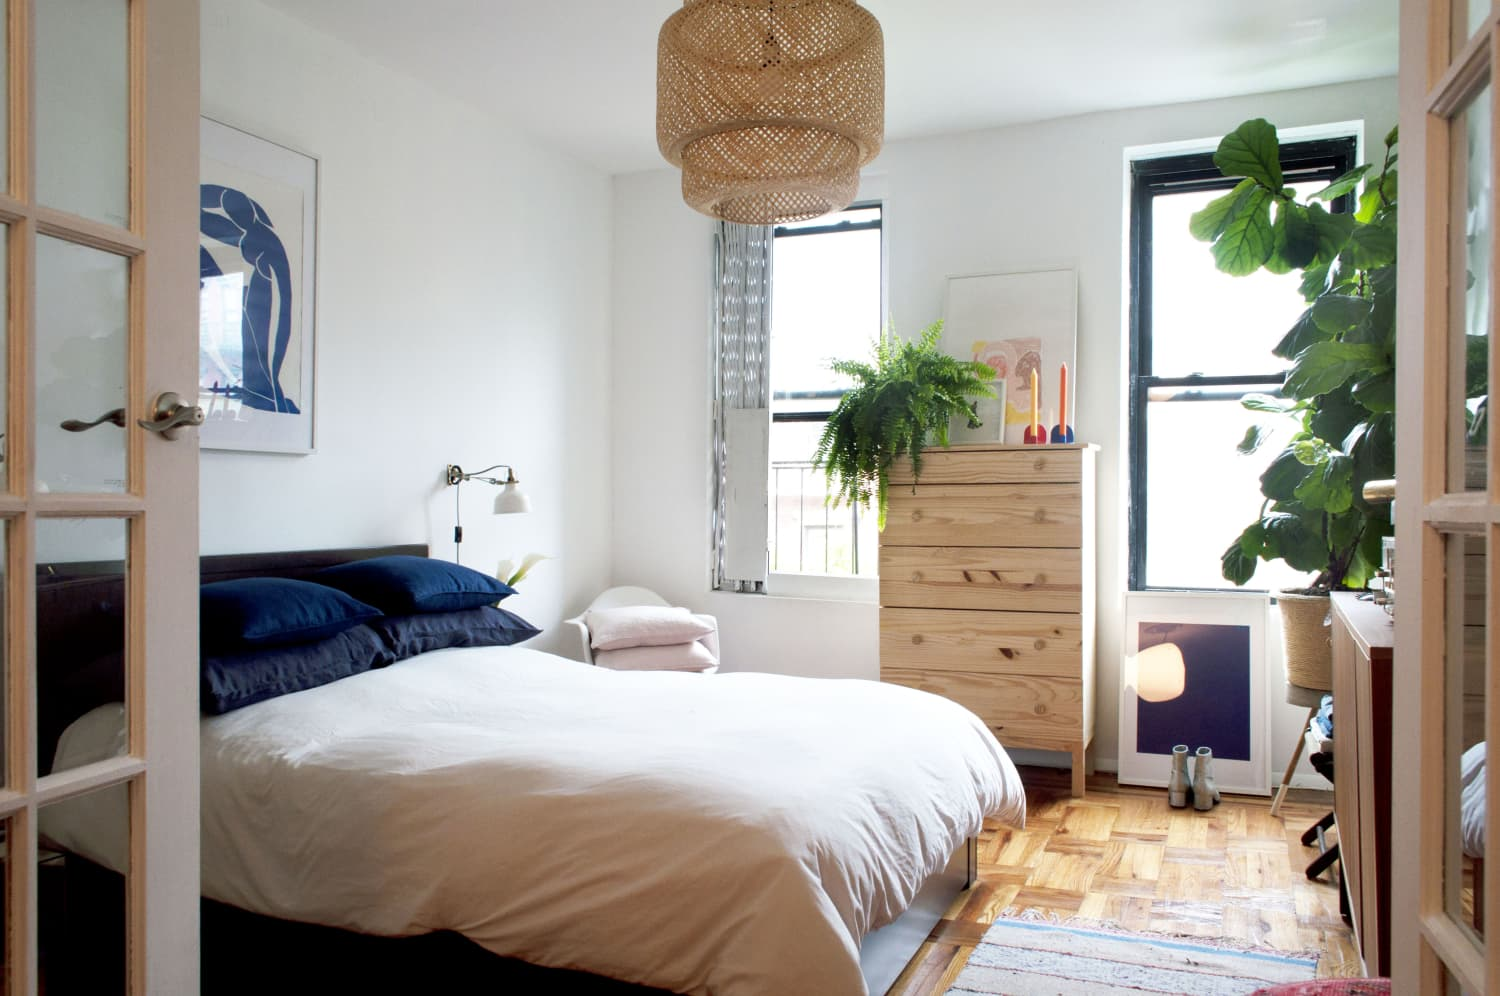 IKEA's $70 Lamp Makes Decorating Magic Wherever You Put It, and These 7 Rooms Prove It